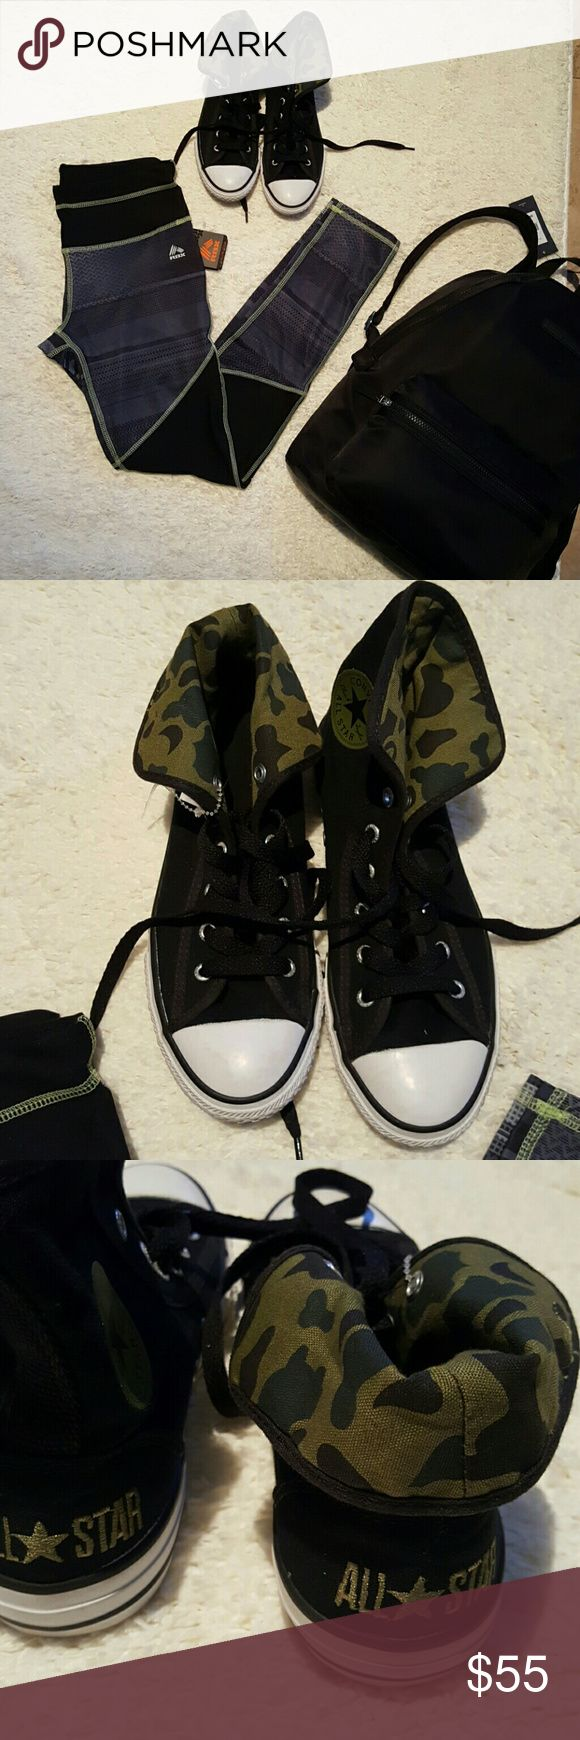 Hi Cut Converse Ladies Sneakers New without a box!! Never worn.  These sneaker shoes  has a lot of transition from dressy to athletic look and a like, inner camouflage ankle fabric, rubber sole. Size: 4 (6.5). True to size. PRICE IS FIRM UNLESS BUNDLE! Thanks for understanding. Converse Shoes Sneakers